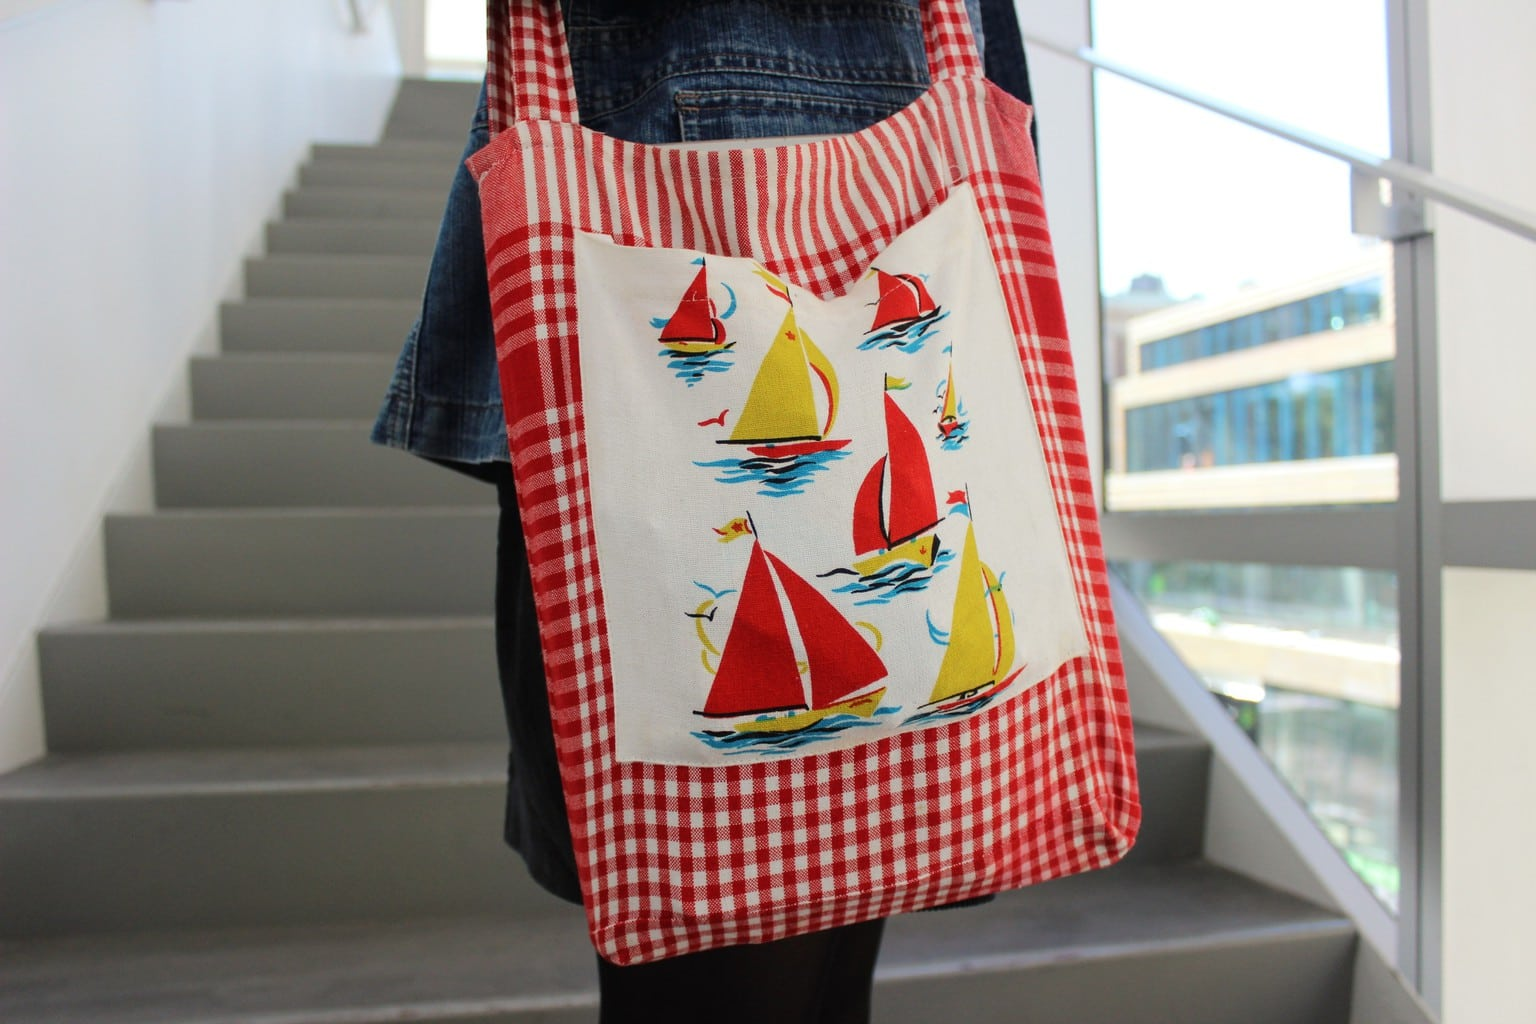 This red and white gingham totebag has a sailboat pattern.